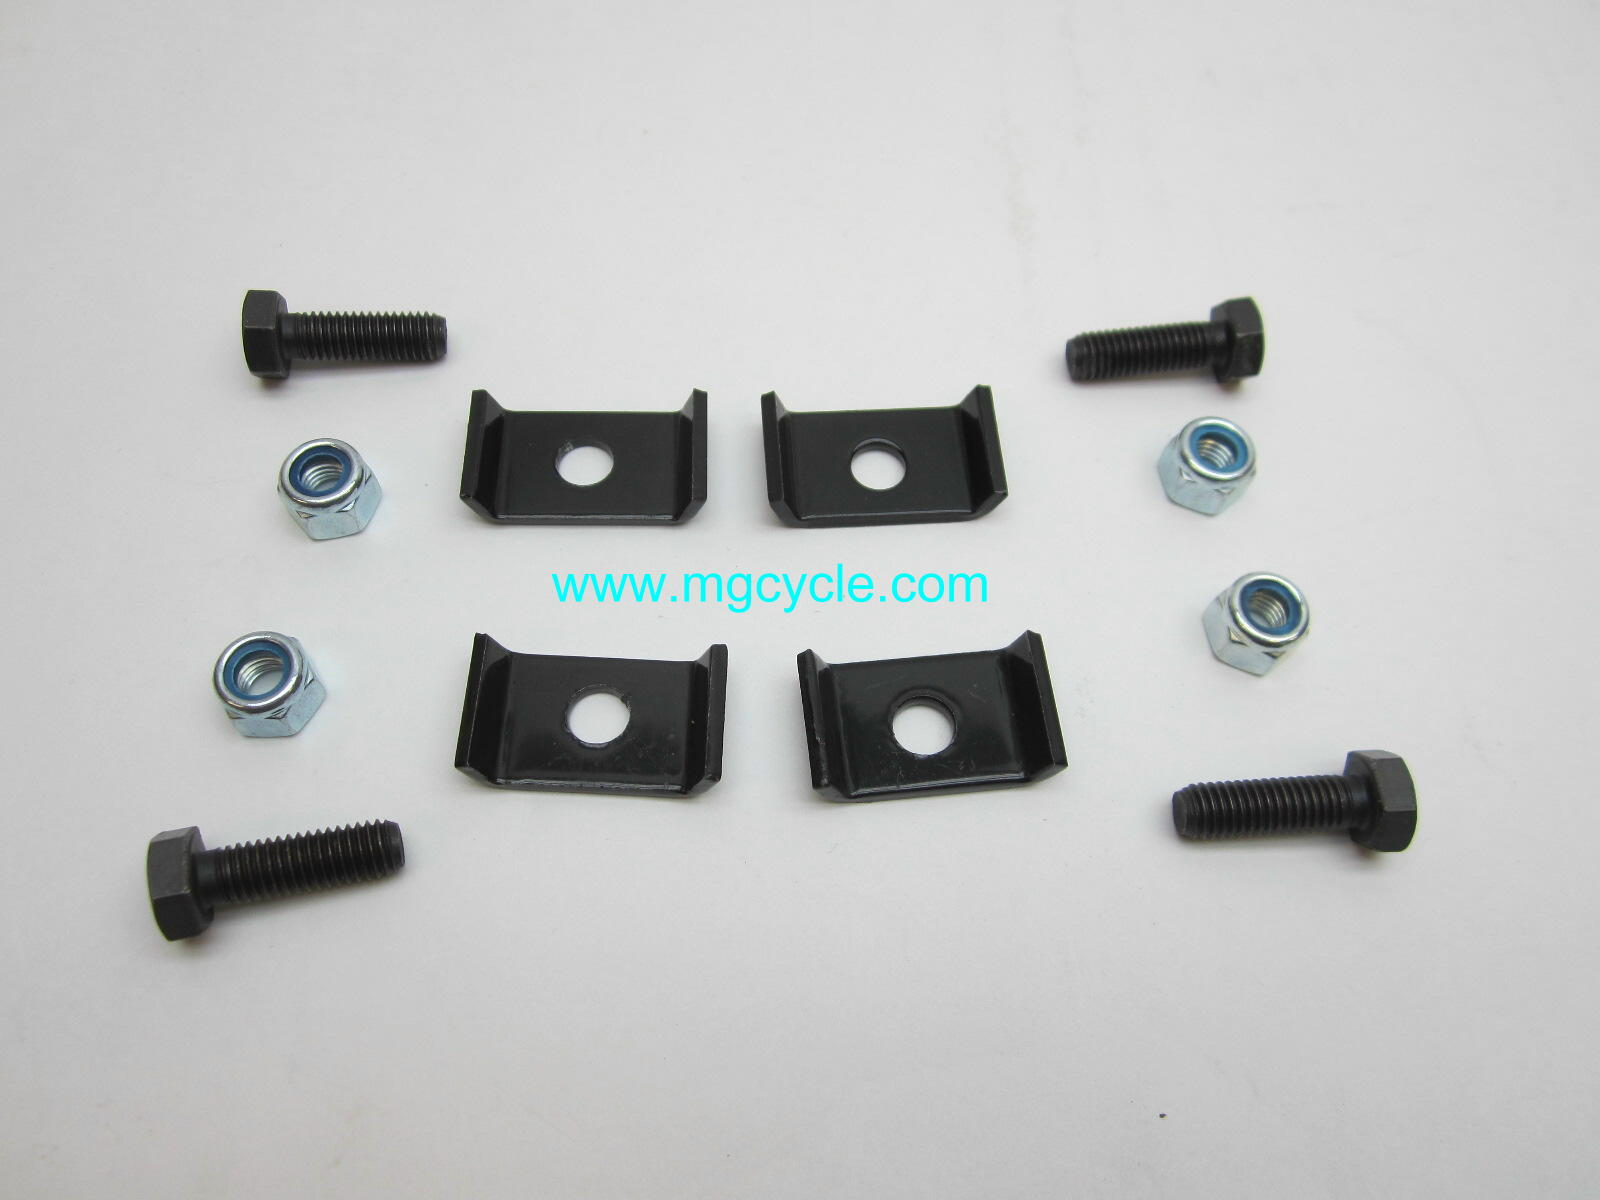 windshield clip kit, many models with oem shields